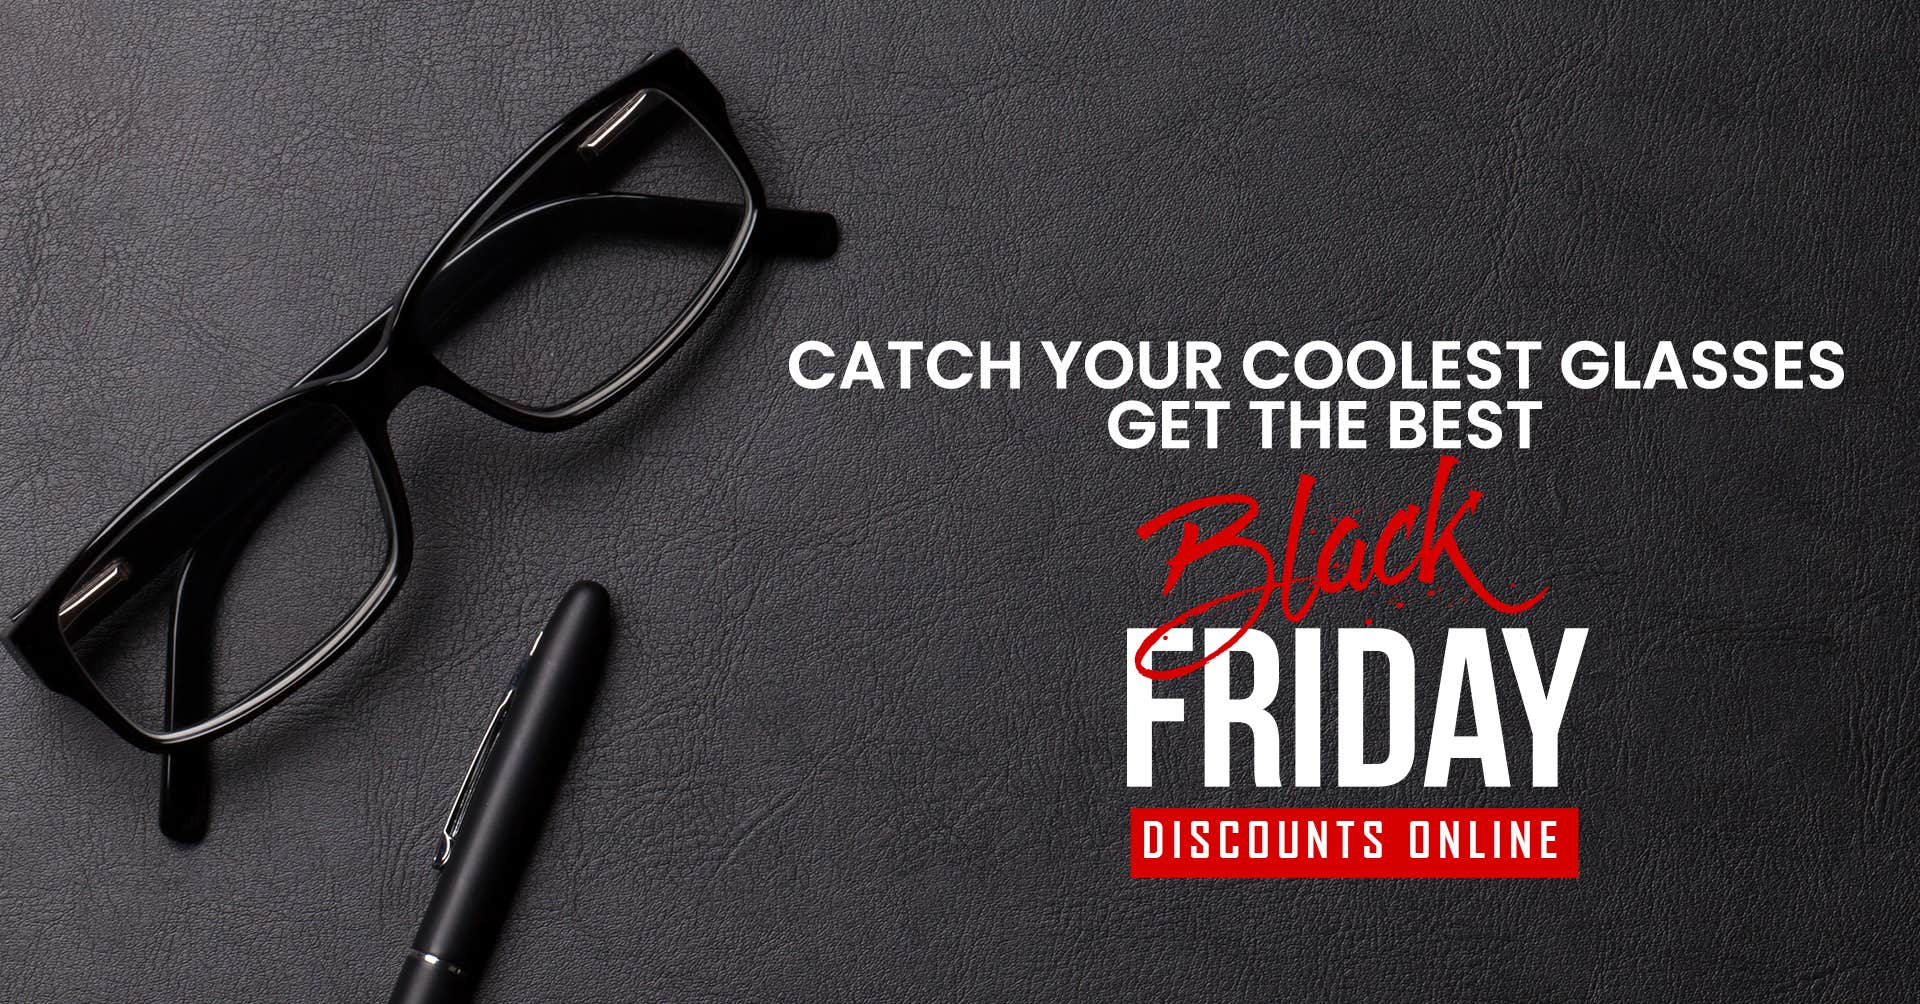 Get The Best Black Friday Discounts Online